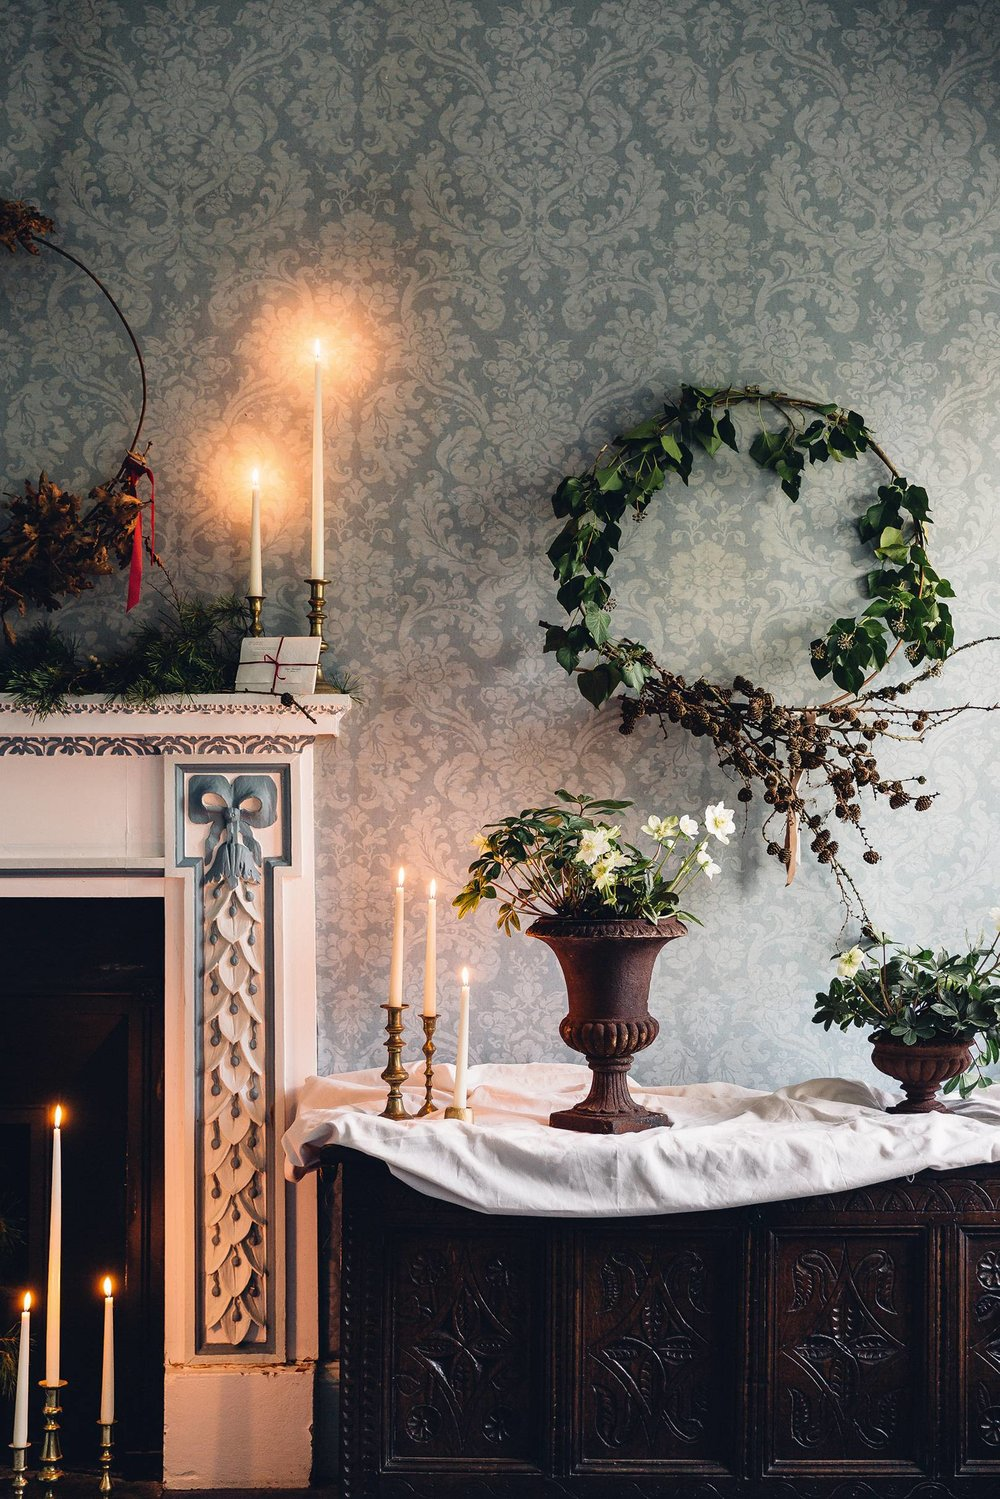 ROSE & IVY Winter Solstice Happy Holidays & Happy New Year